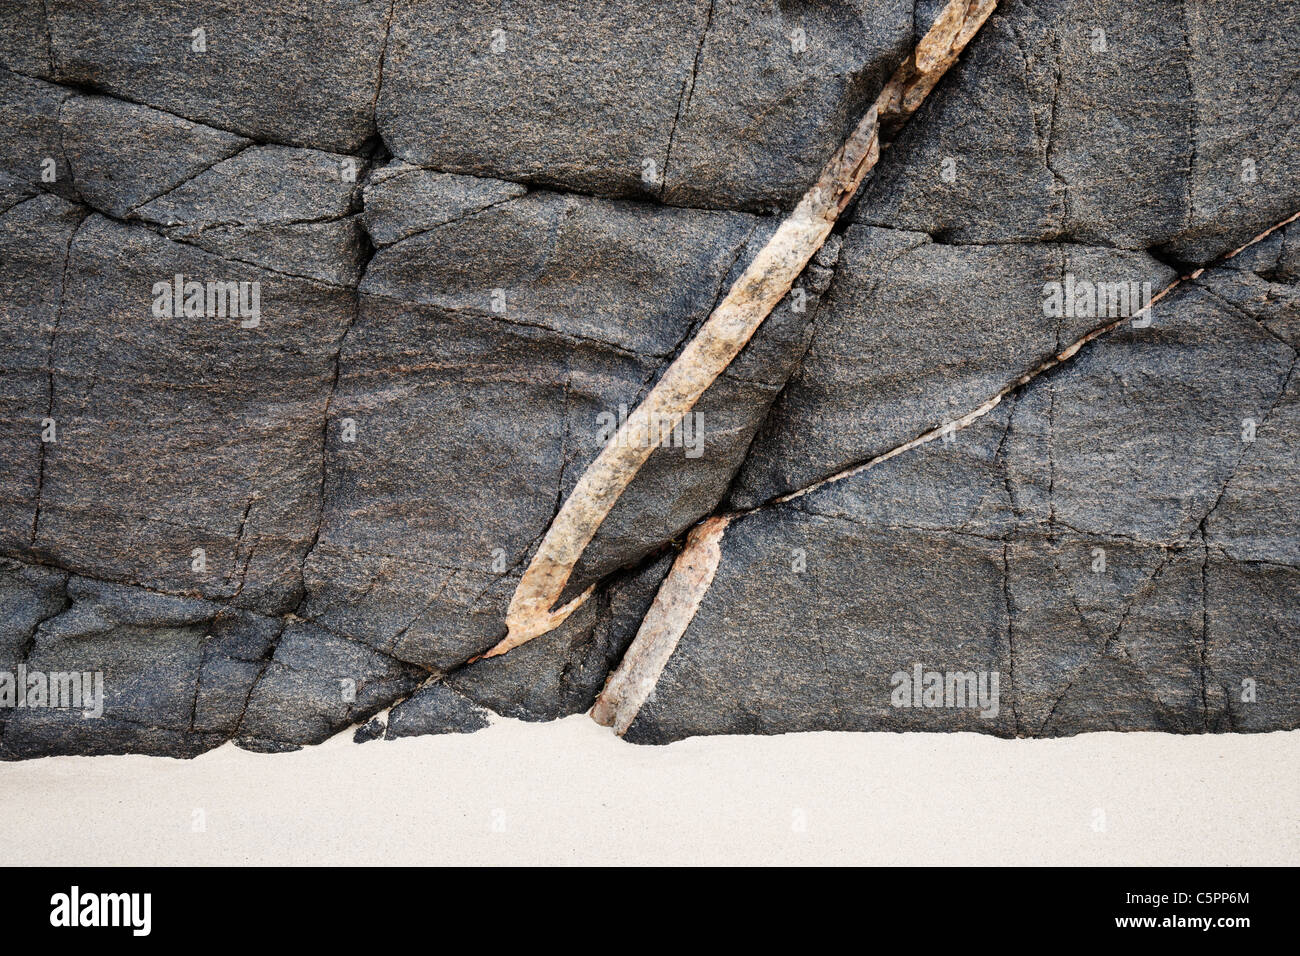 Rock patterns at Oldshoremore beach, Sutherland, Highland, Scotland, UK - Stock Image